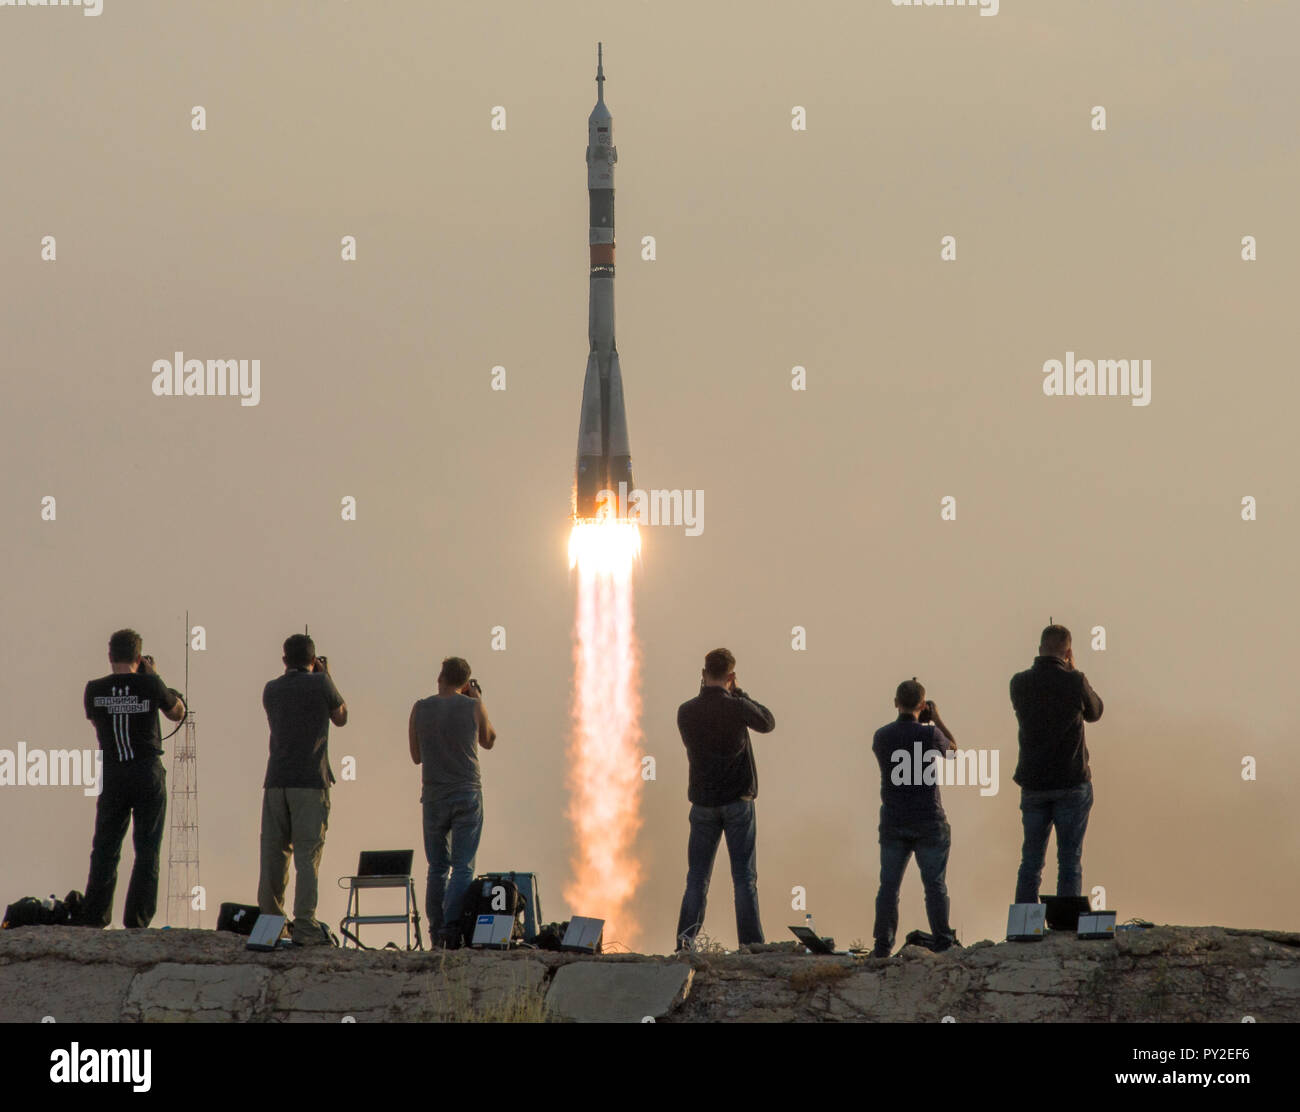 The Soyuz MS-01 spacecraft launches from the Baikonur Cosmodrome with Expedition 48-49 crewmembers Kate Rubins of NASA, Anatoly Ivanishin of Roscosmos - Stock Image